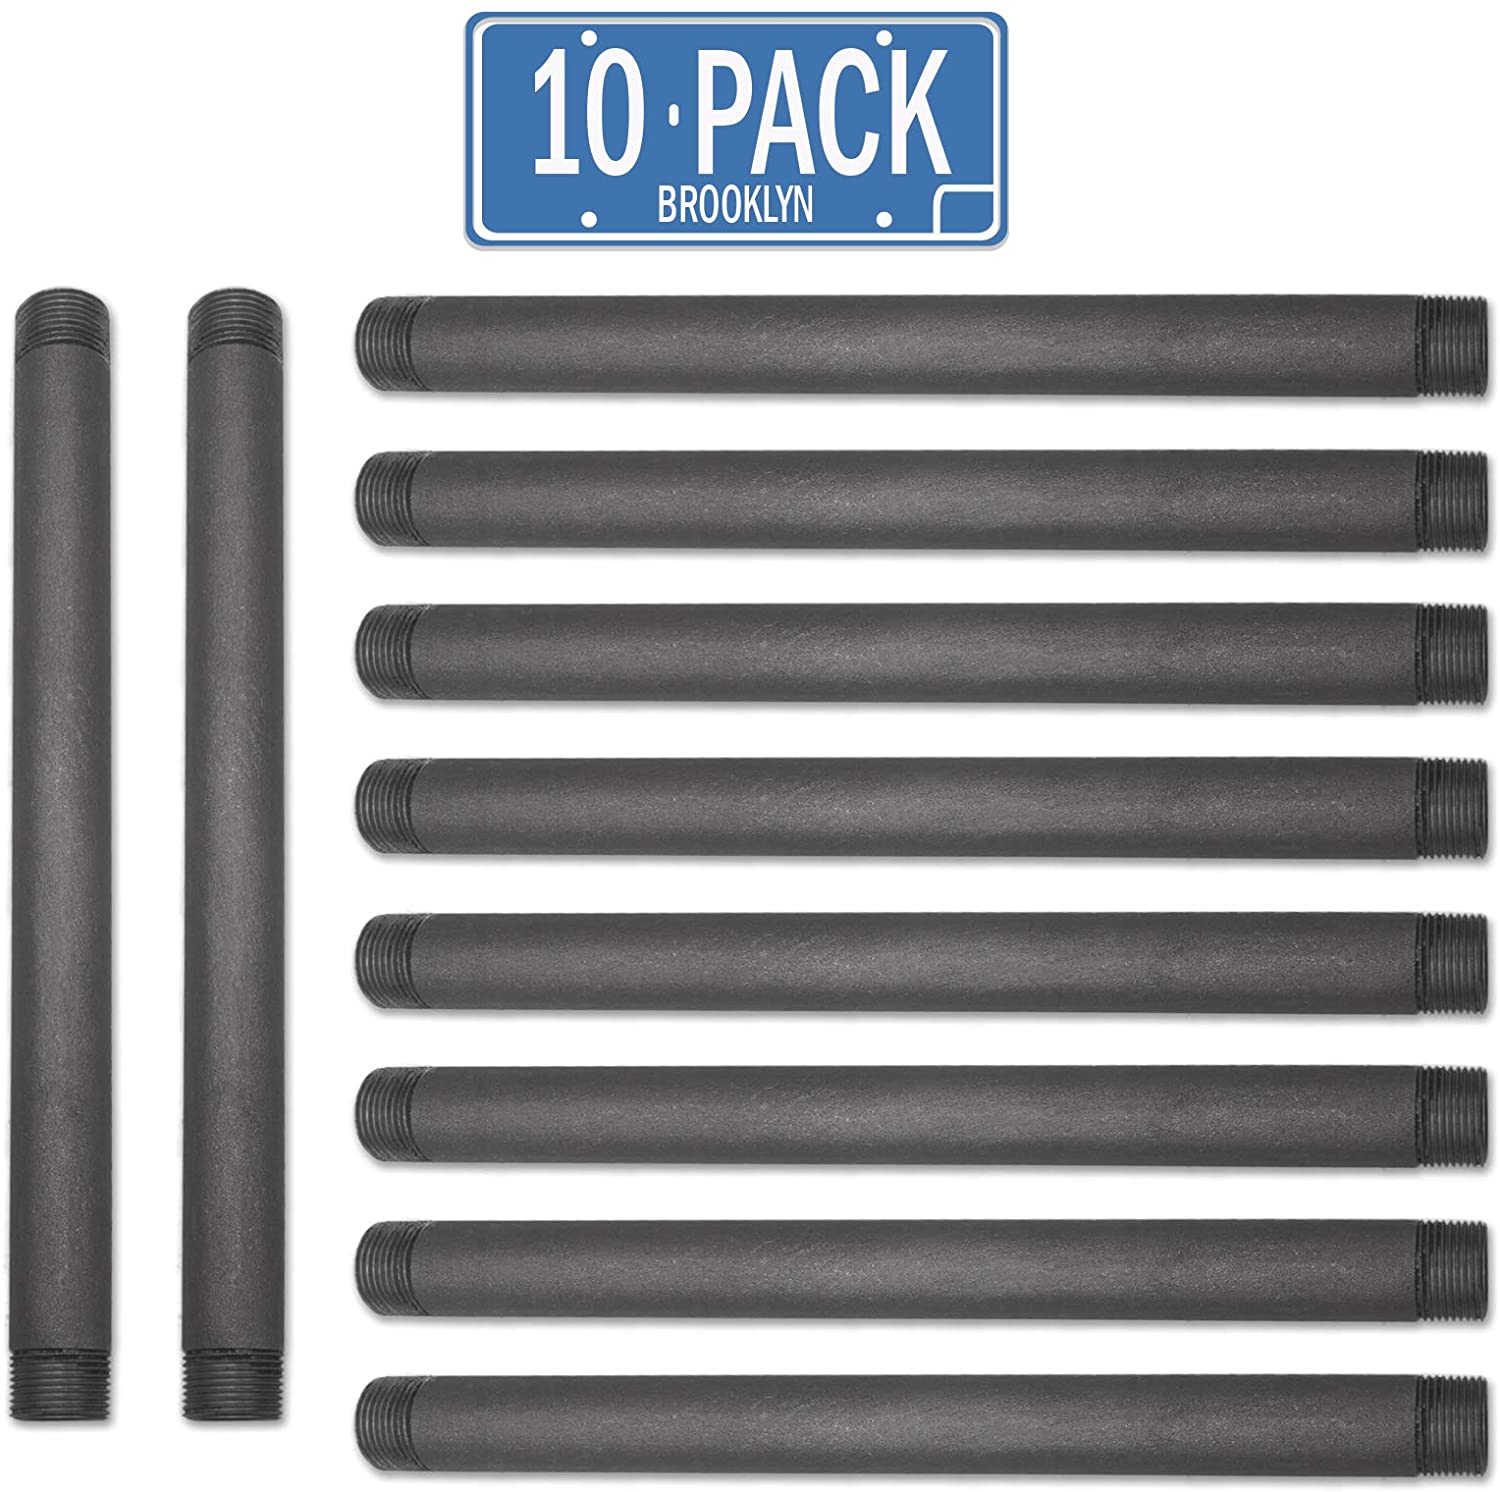 Brooklyn Pipe Sandblast Finish 3/4 x 6 Inch Heavy Duty Furniture Grade Steel Pipe for DIY Shelving and Home Decor Projects, 10 Pack